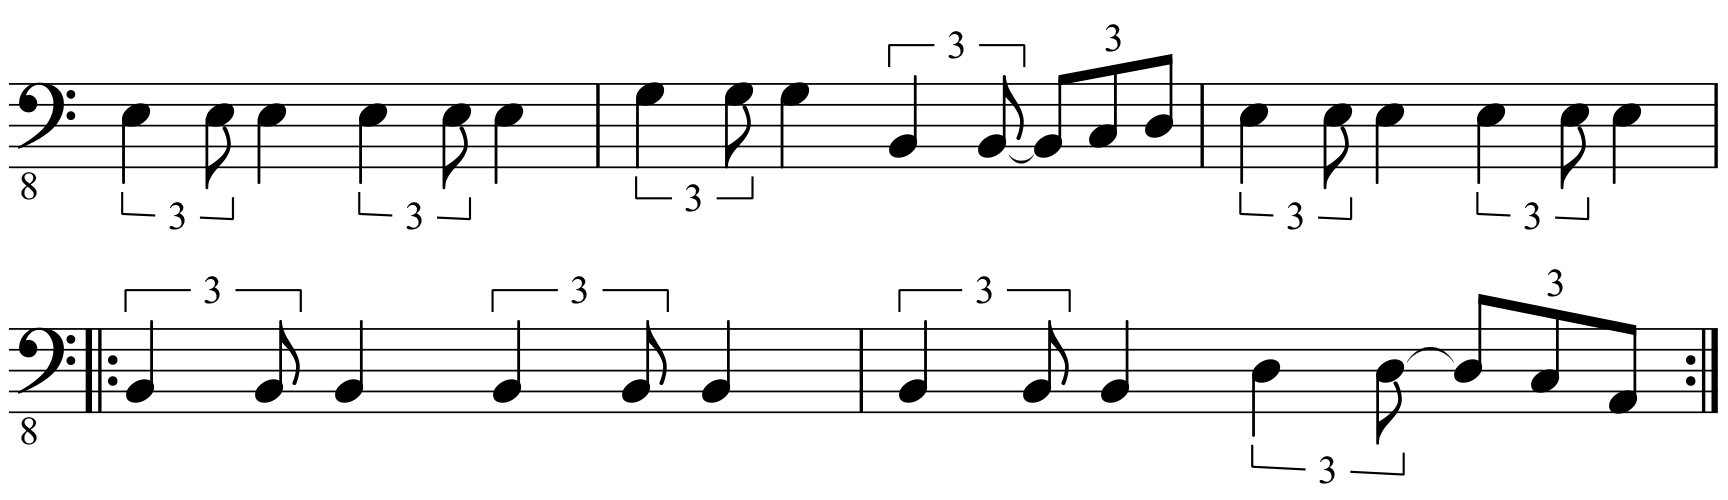 structure-melody-2.png